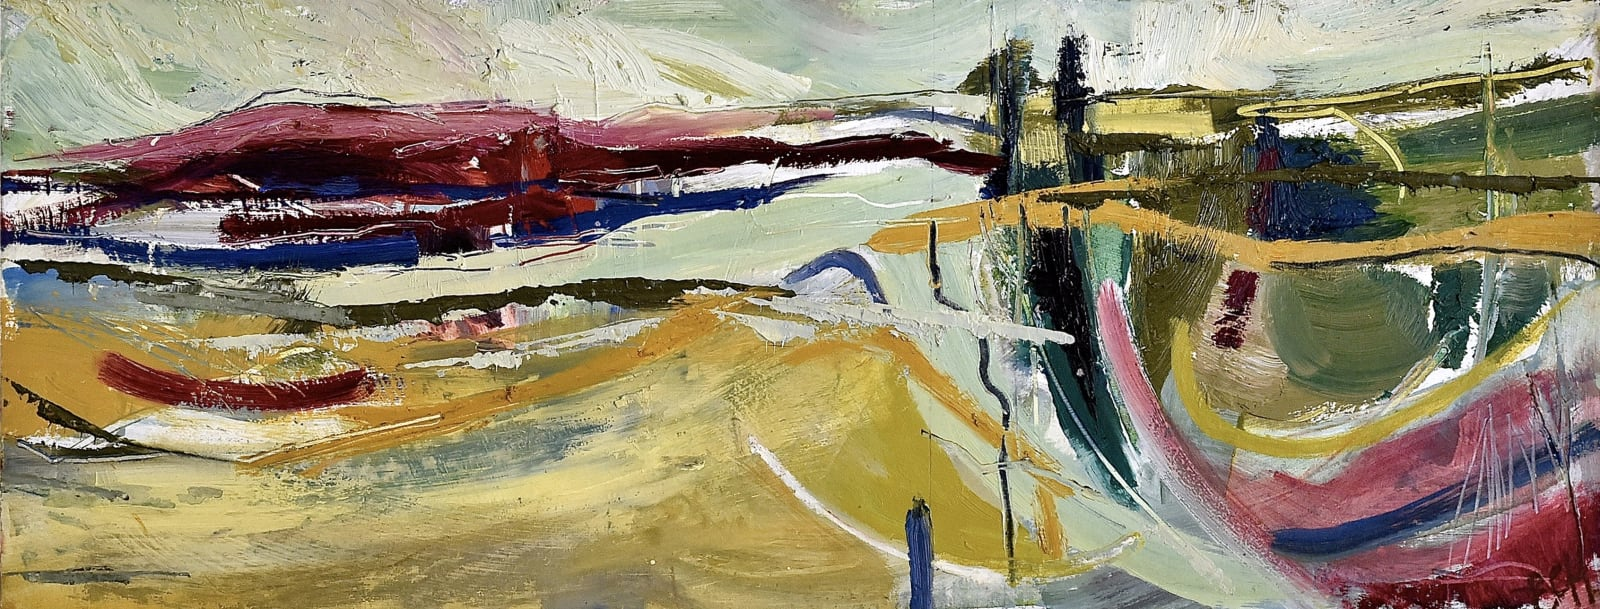 Emma Haggas, Abstract Landscape with Two Pine Trees